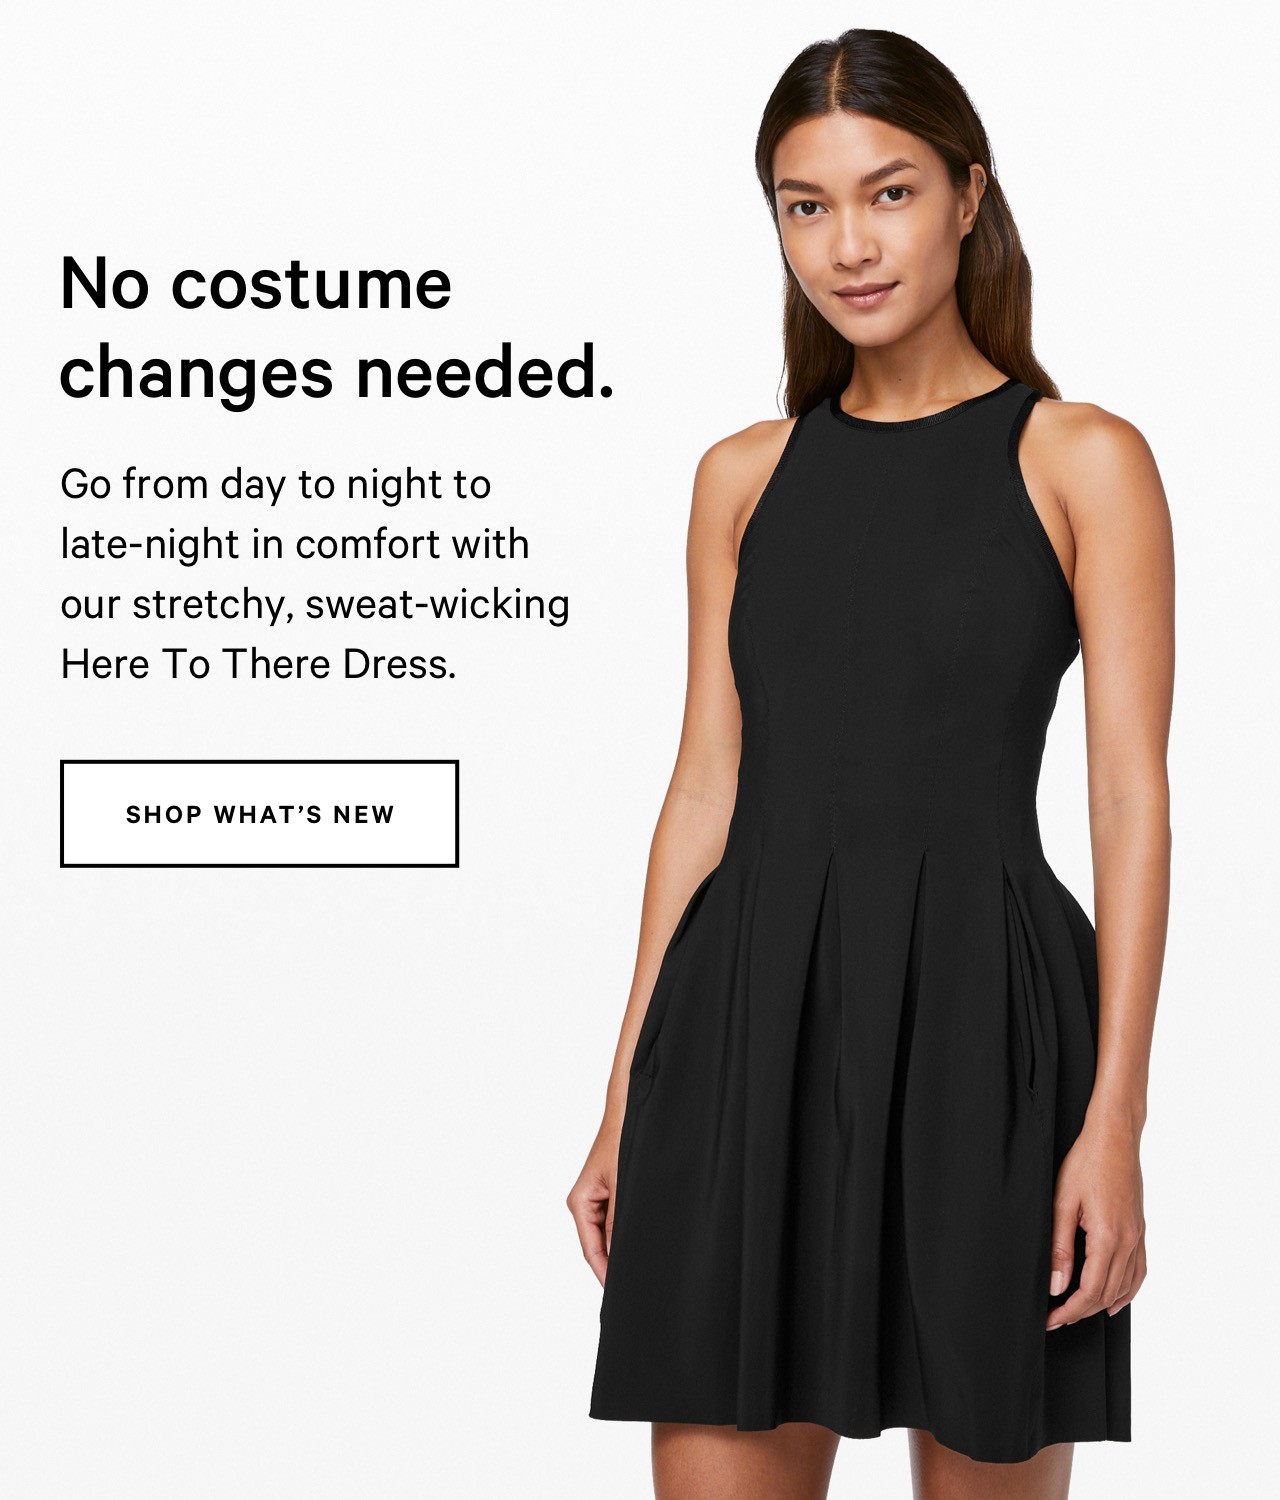 No costume changes needed. - SHOP WHAT'S NEW